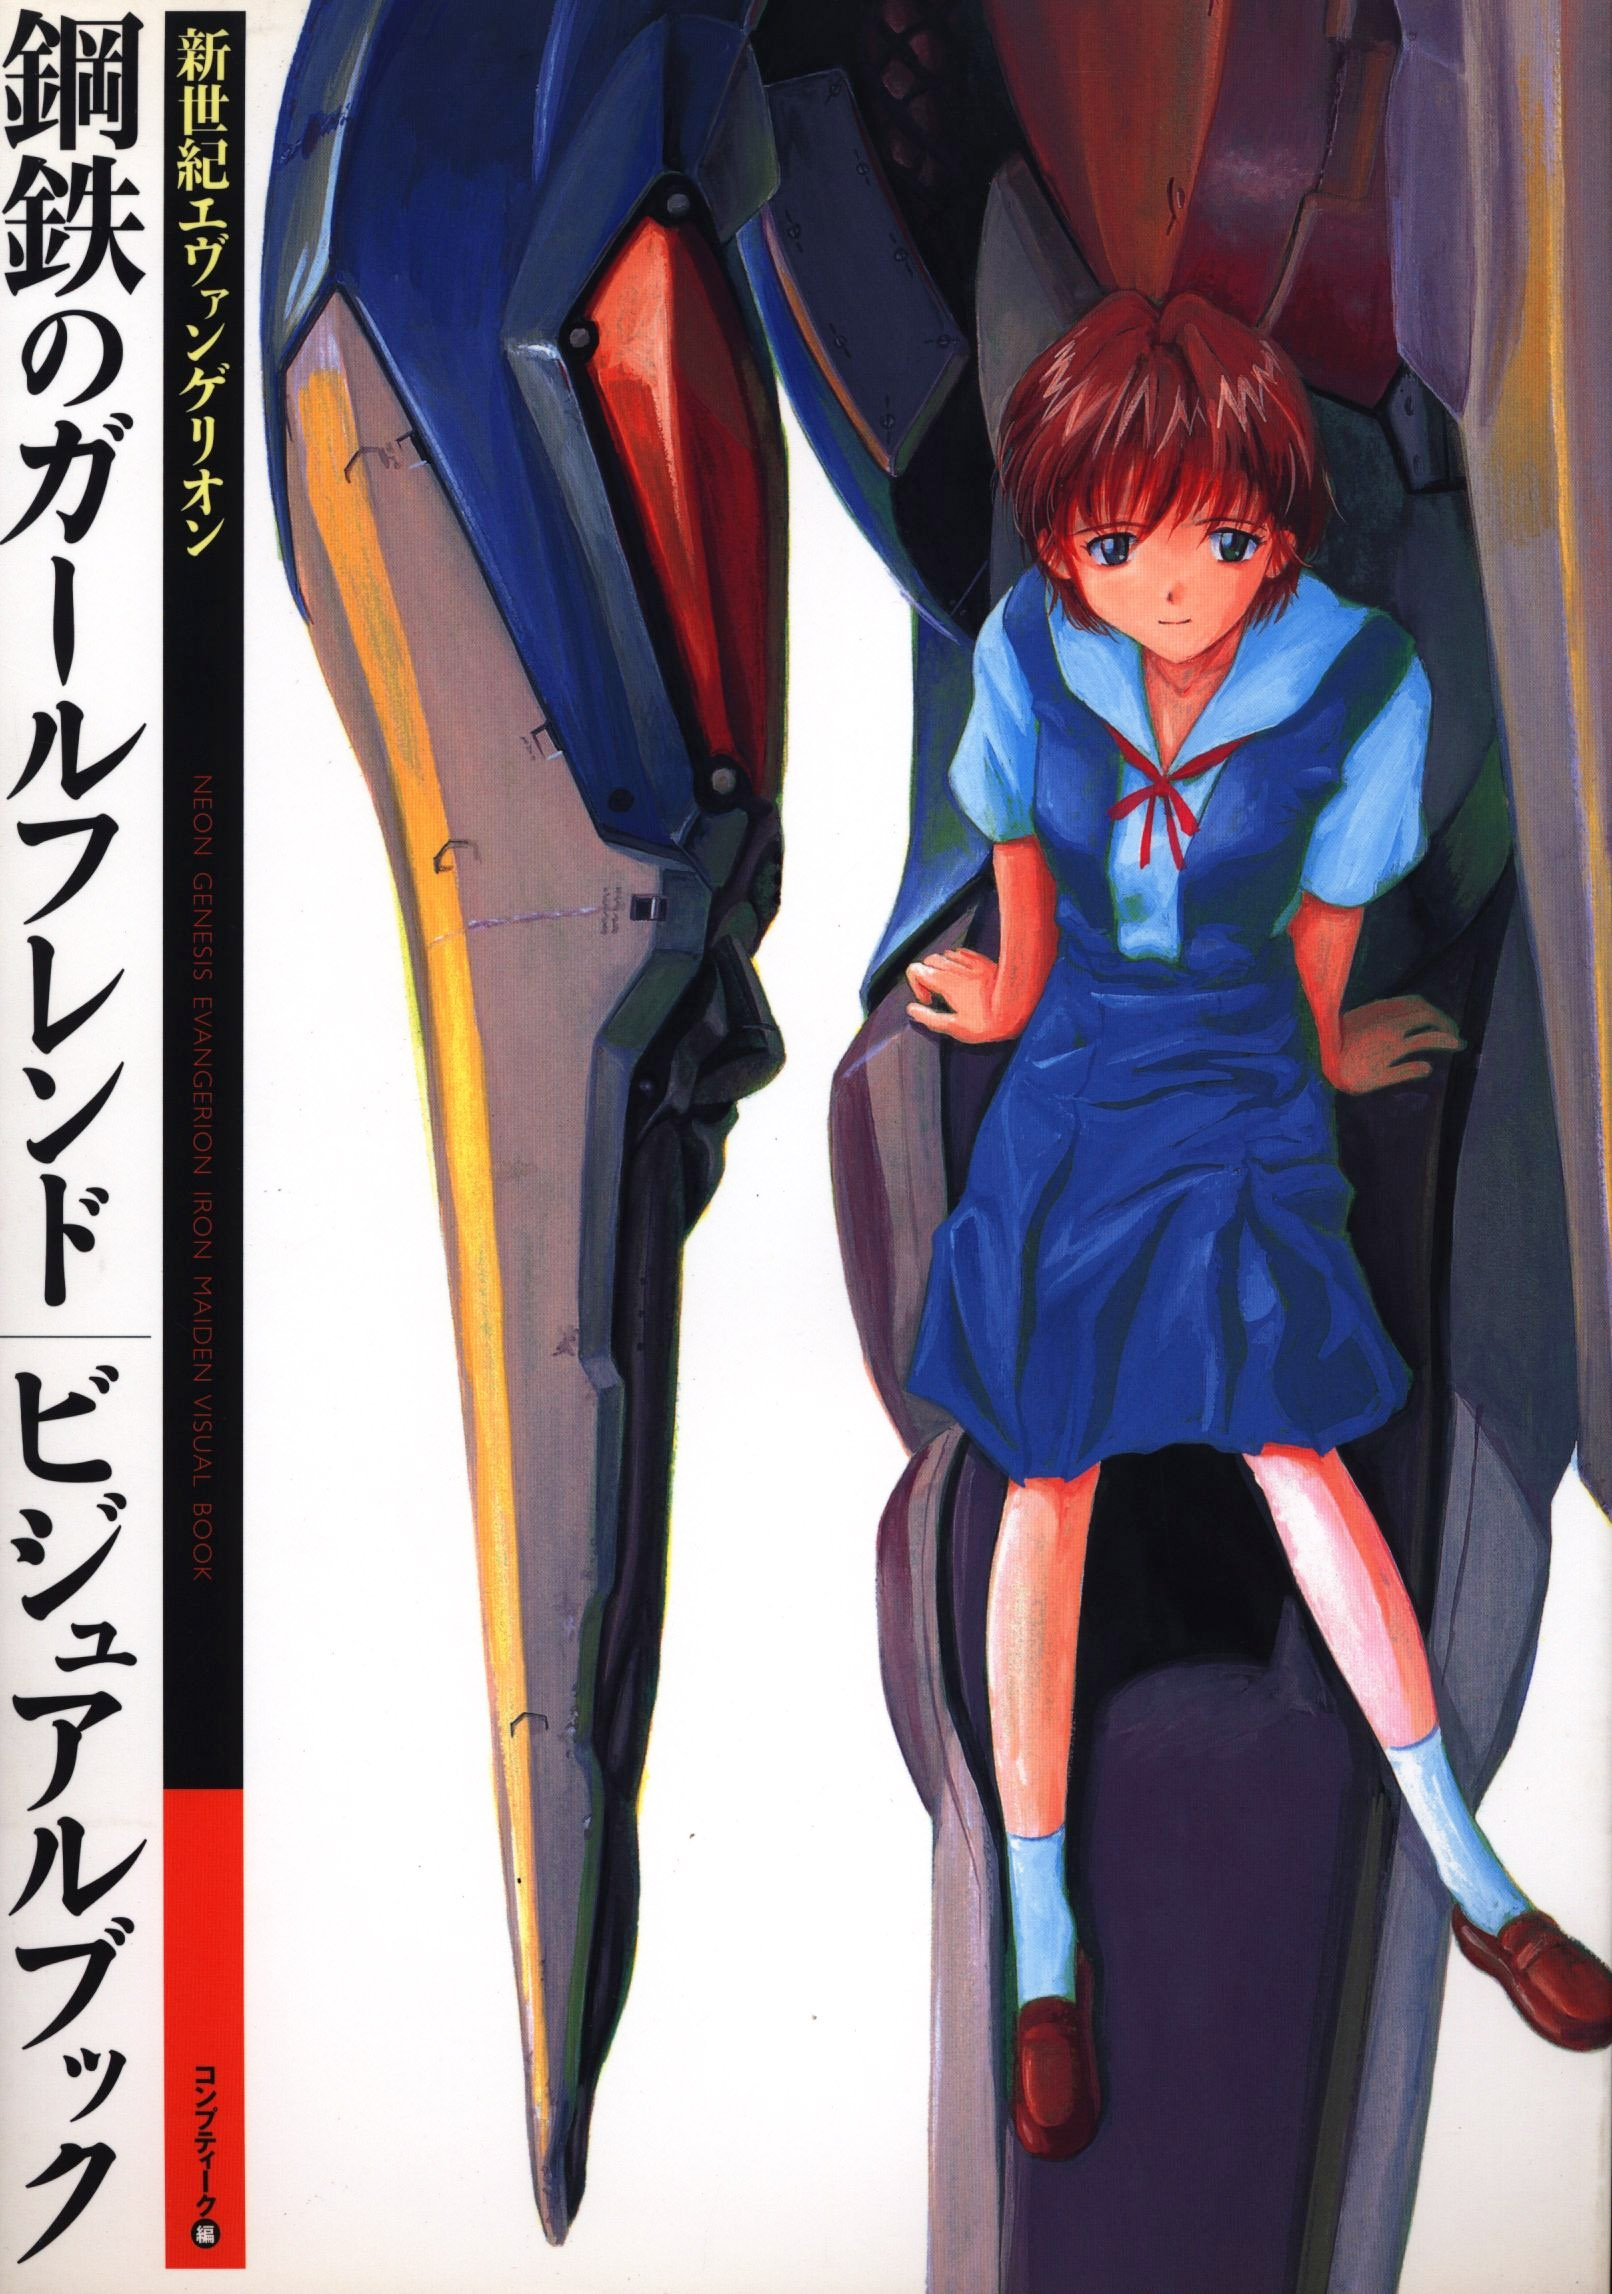 Neon Genesis Evangelion: Girlfriend of Steel - Visual Book